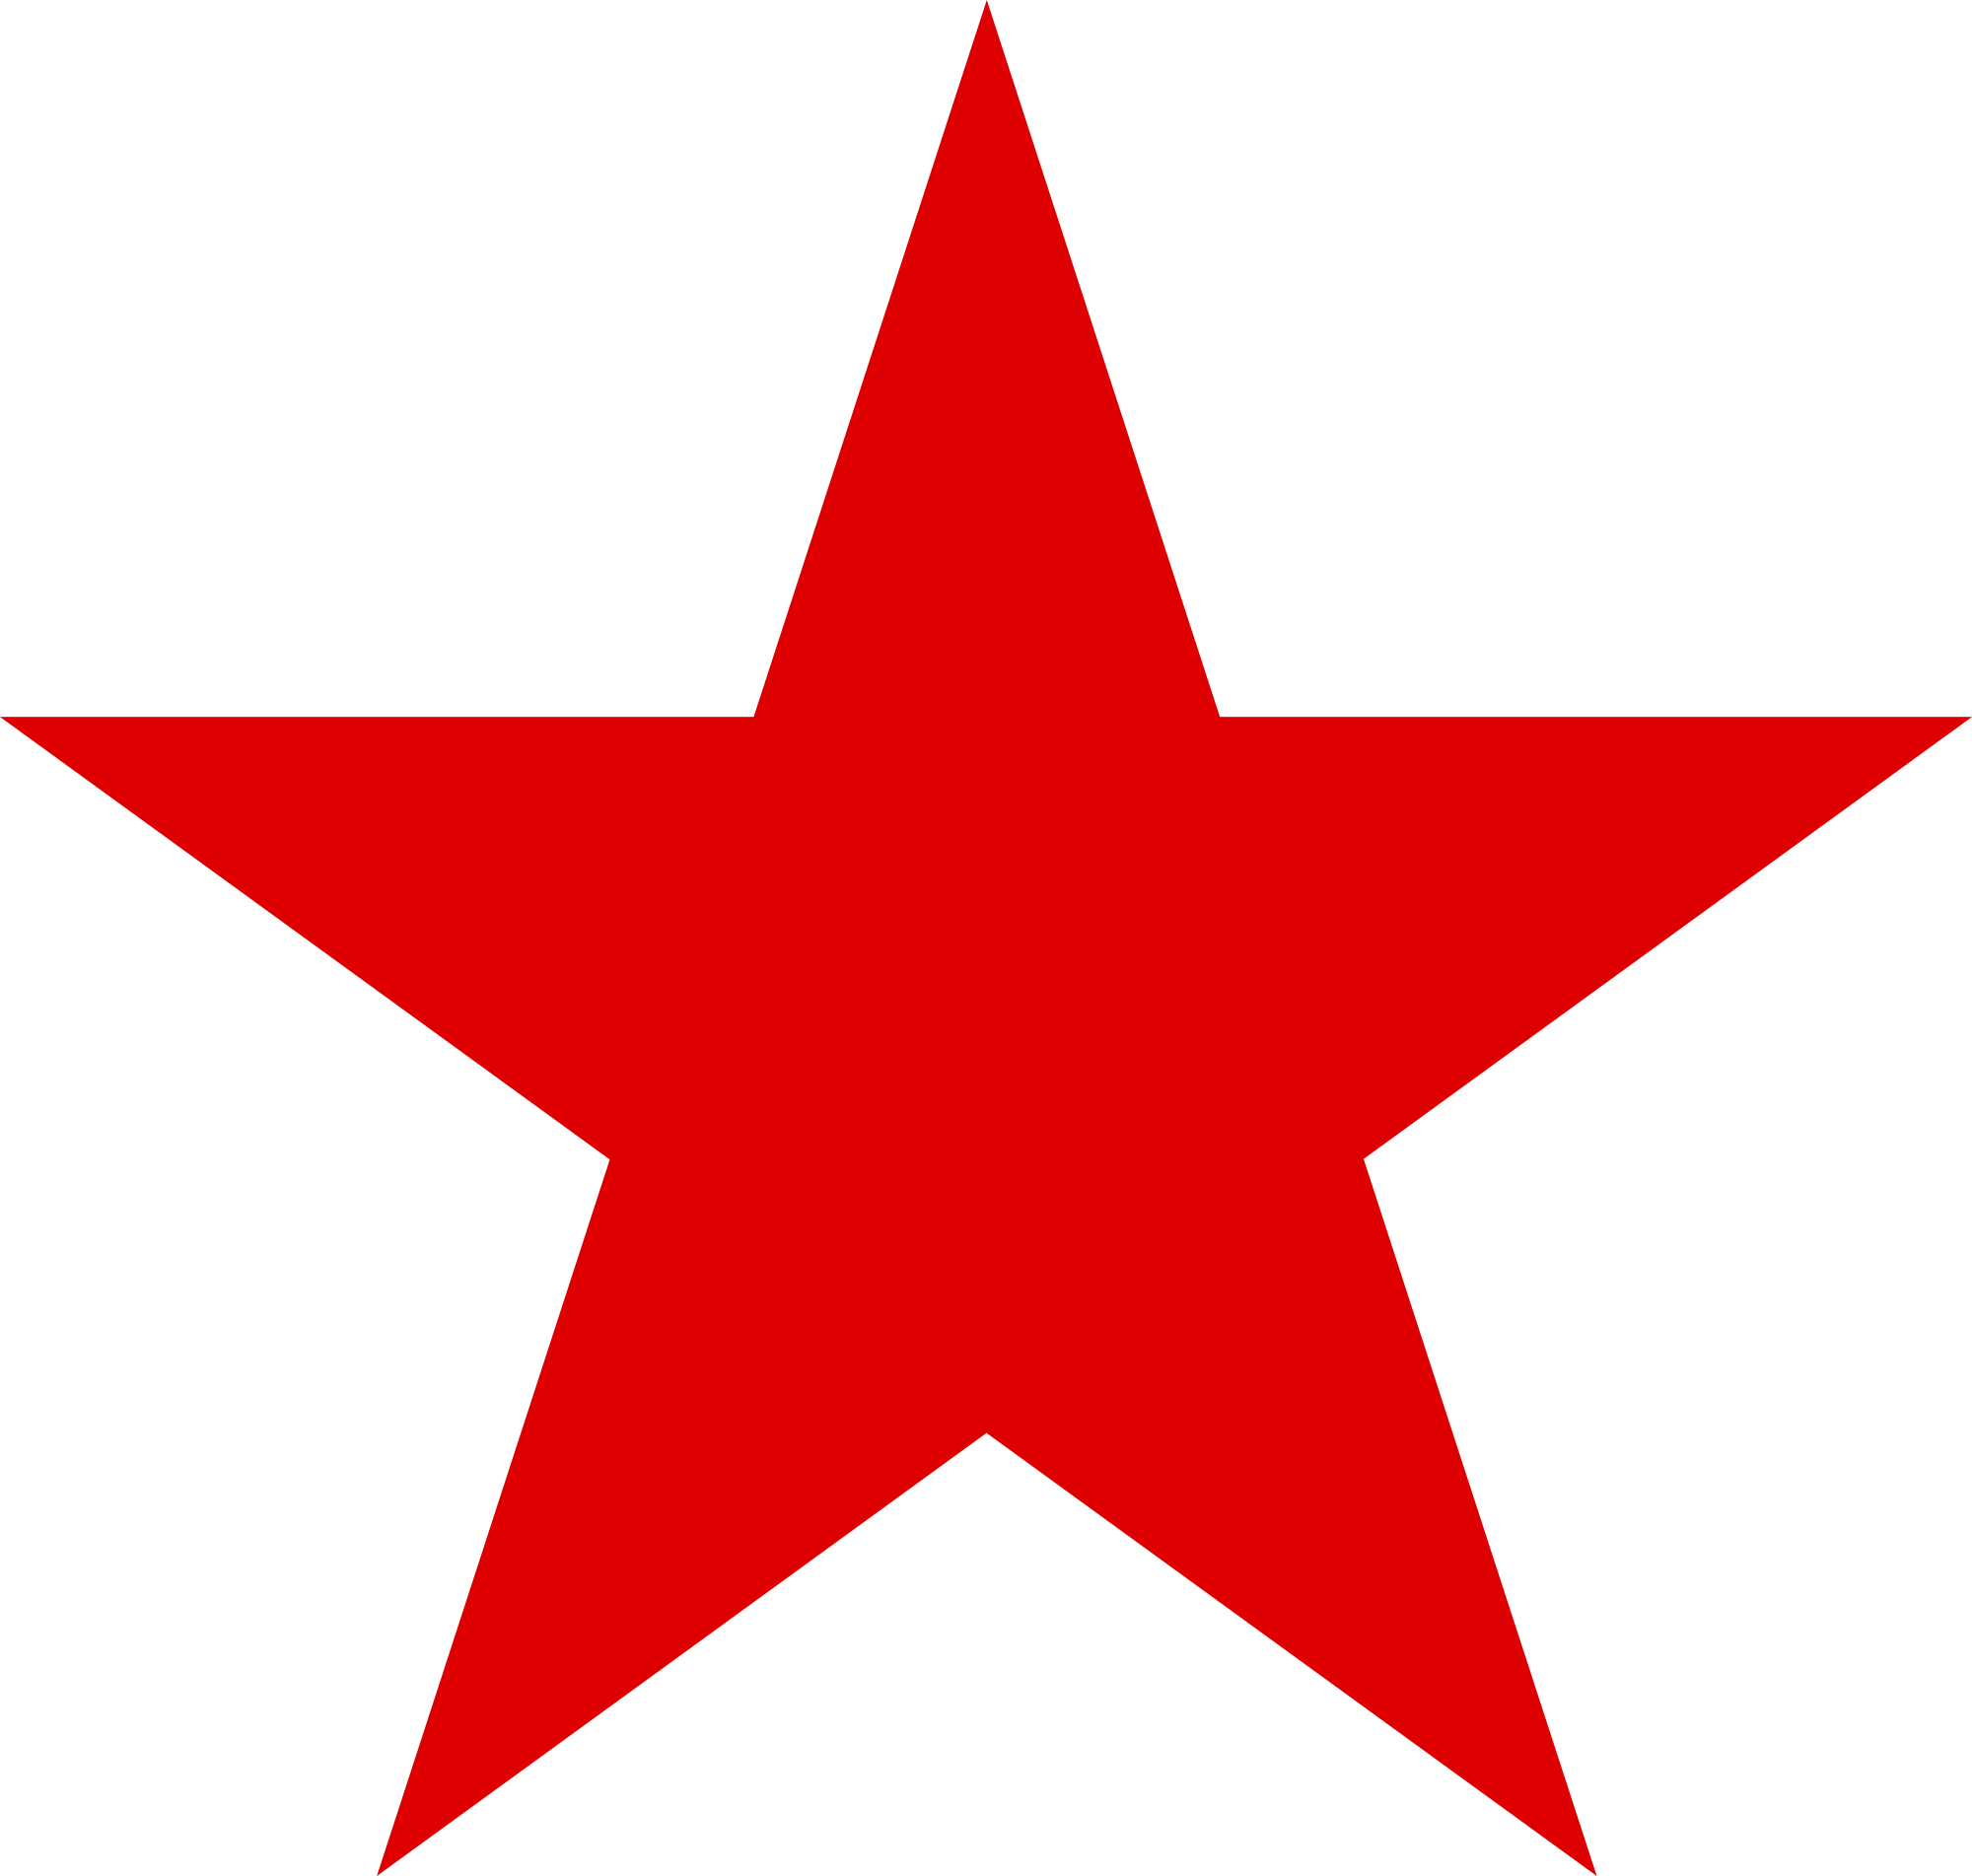 5 pointed star png. Red wikimedia commons